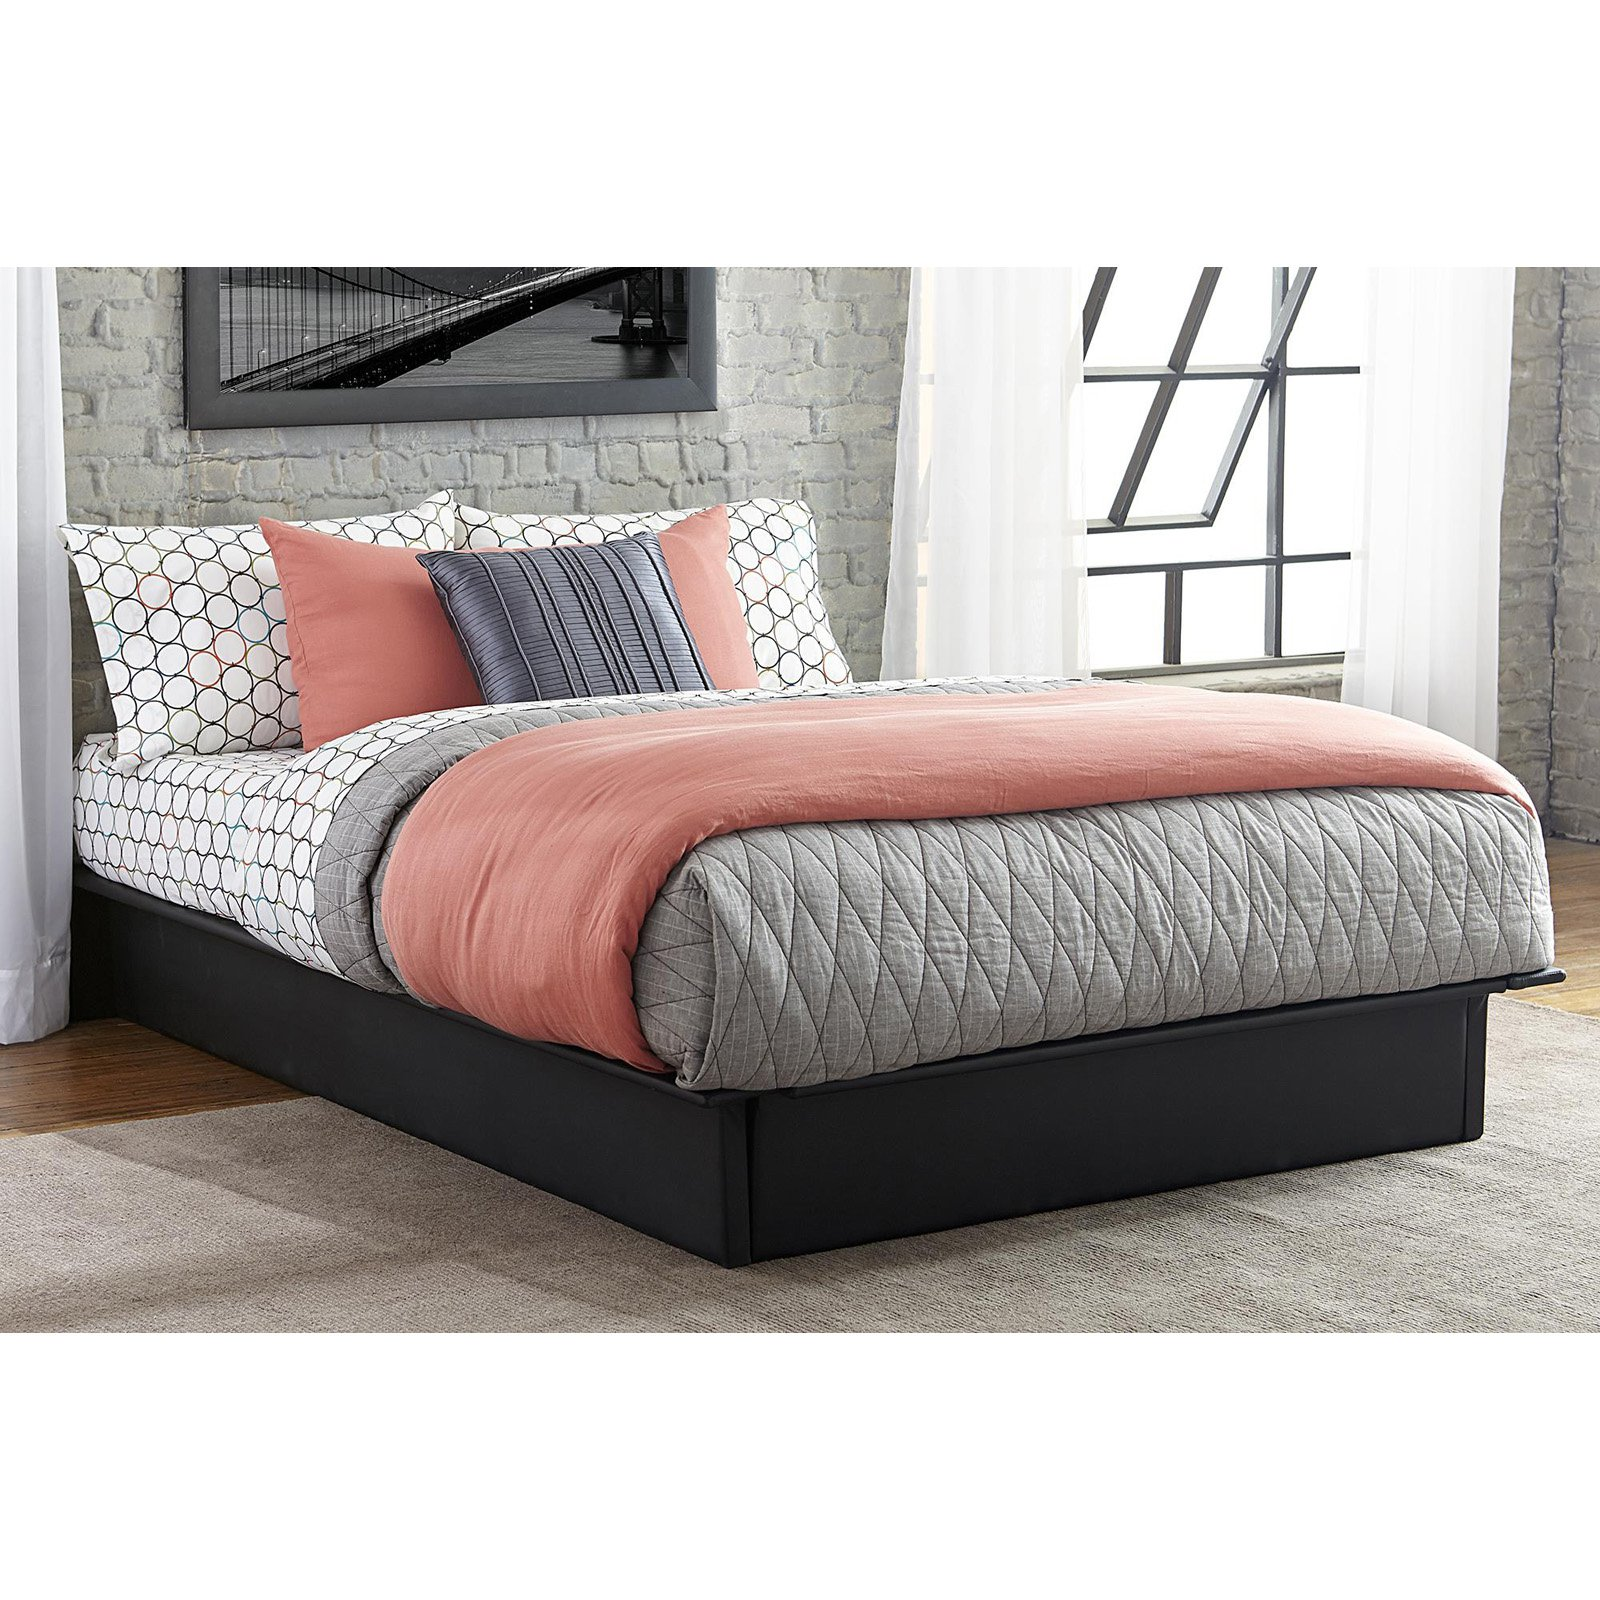 Is A Platform Bed Comfortable Dhp Maven Platform Bed With Upholstered Faux Leather And Wooden Slat Support Multiple Sizes And Colors